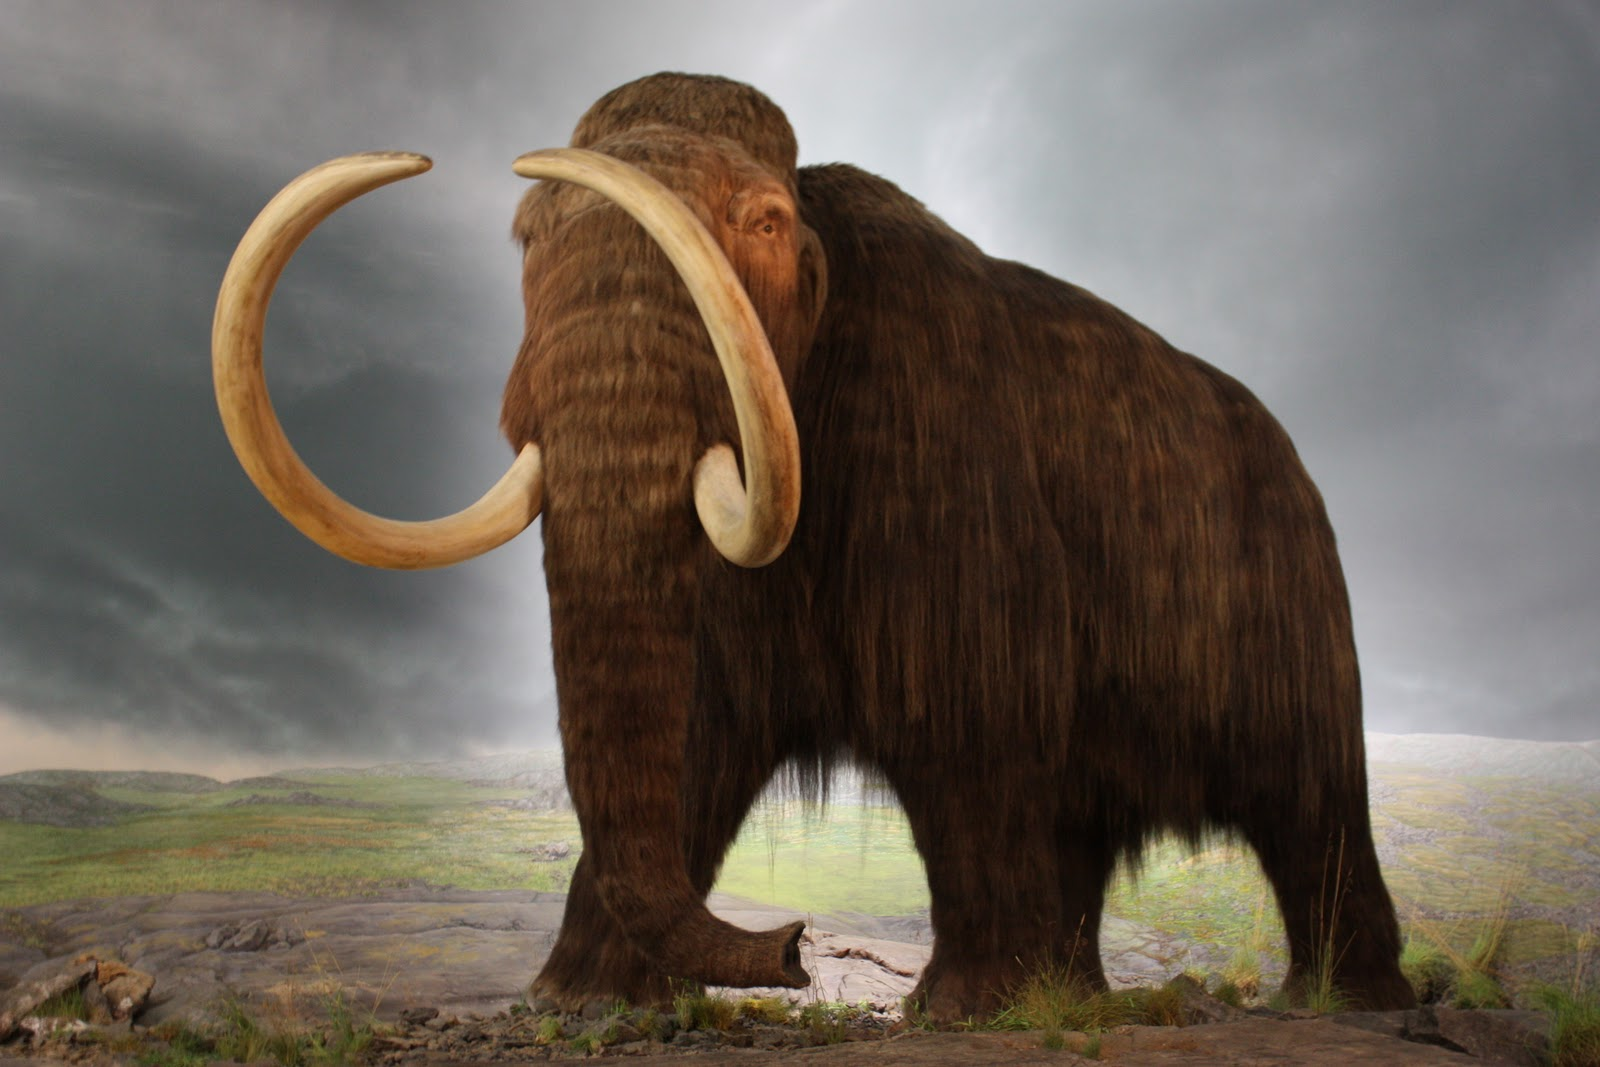 wooly mammoth by silentravyn - photo #14